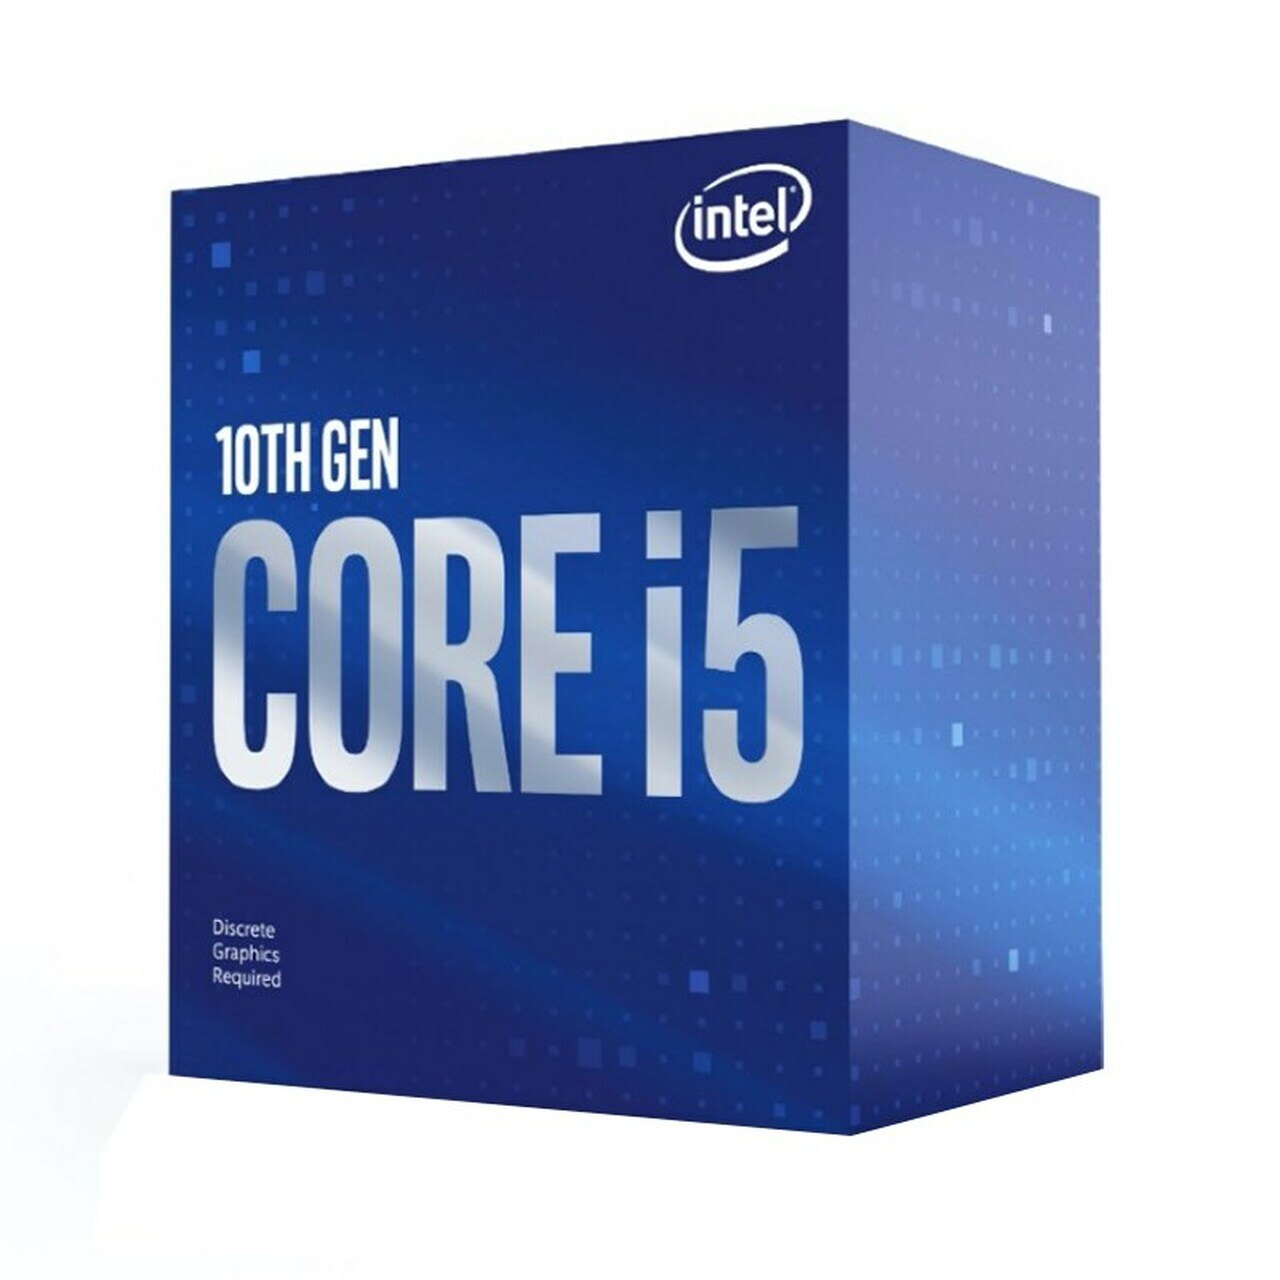 Procesador Intel Core I5 10400F 2 9 12M 6Core X No Video